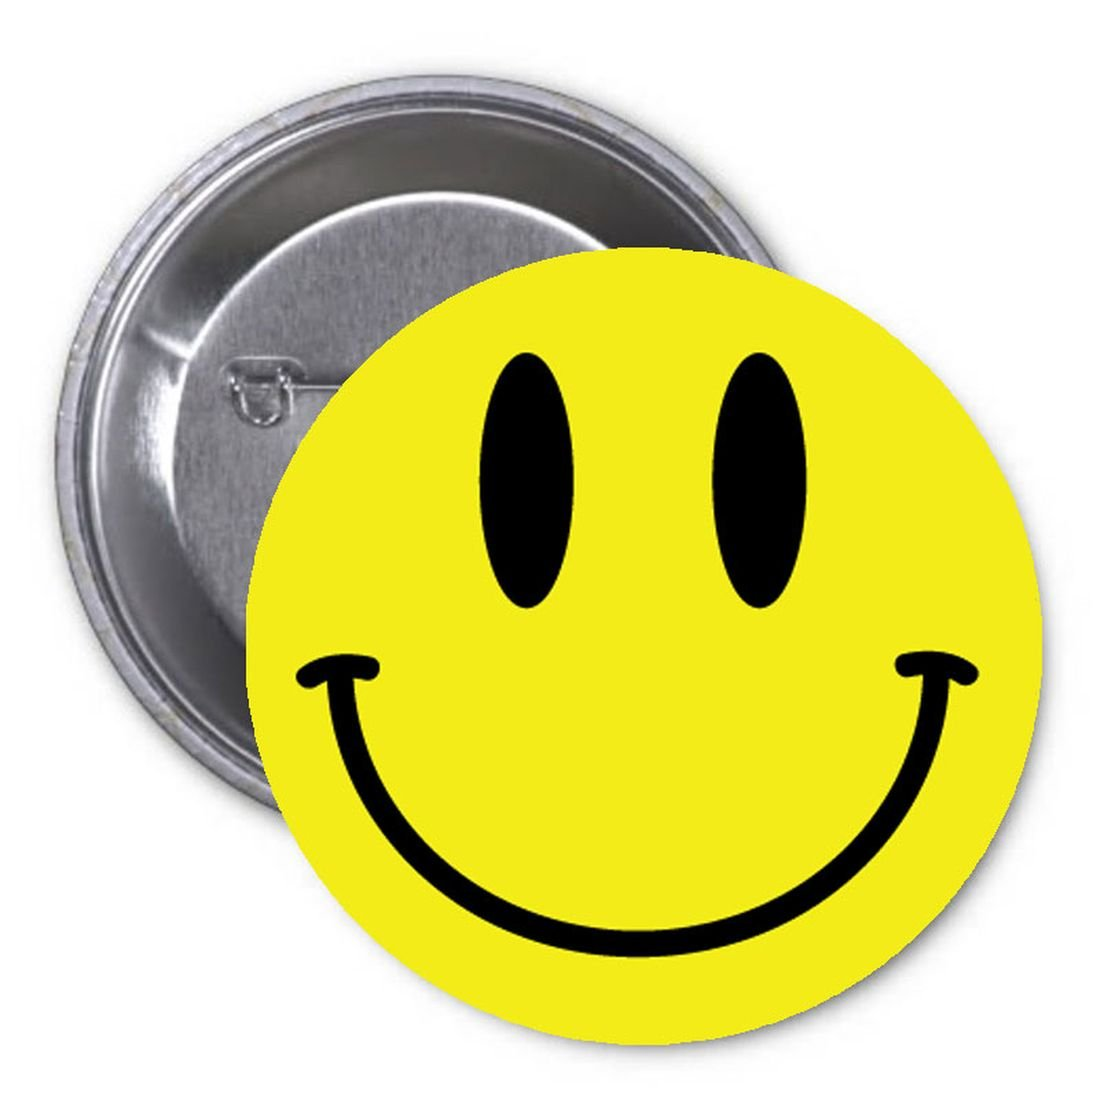 Retro Smiley Face Yellow 1.25 Pinback Button Pin Costume Accessory